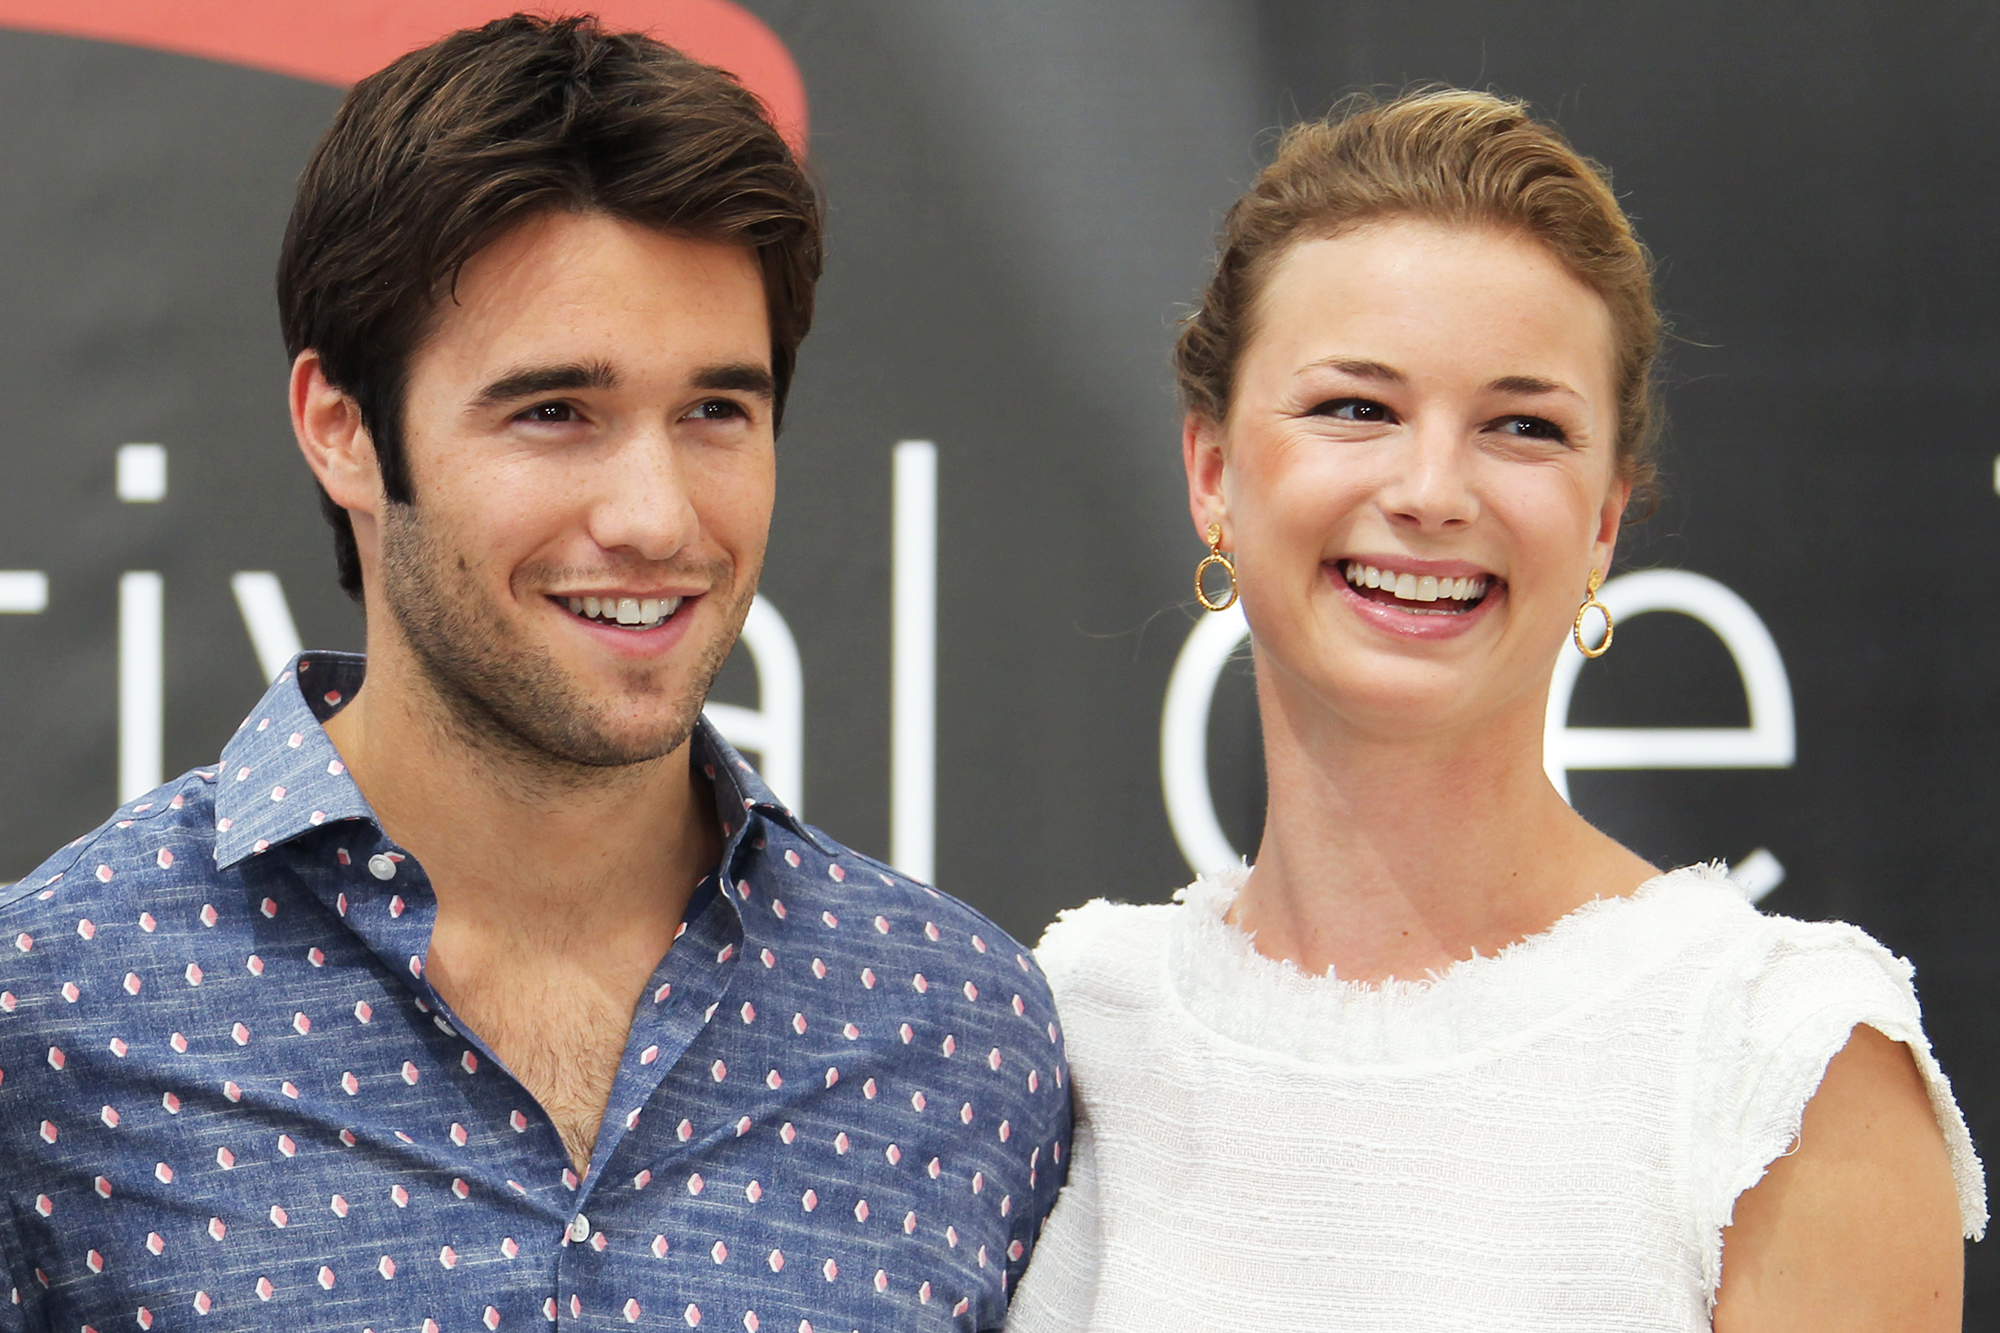 Emily VanCamp Shares Picture From Topical Honeymoon After Marrying Josh Bowman: 'Never Leaving' - Joshua Bowman and Emily VanCamp.